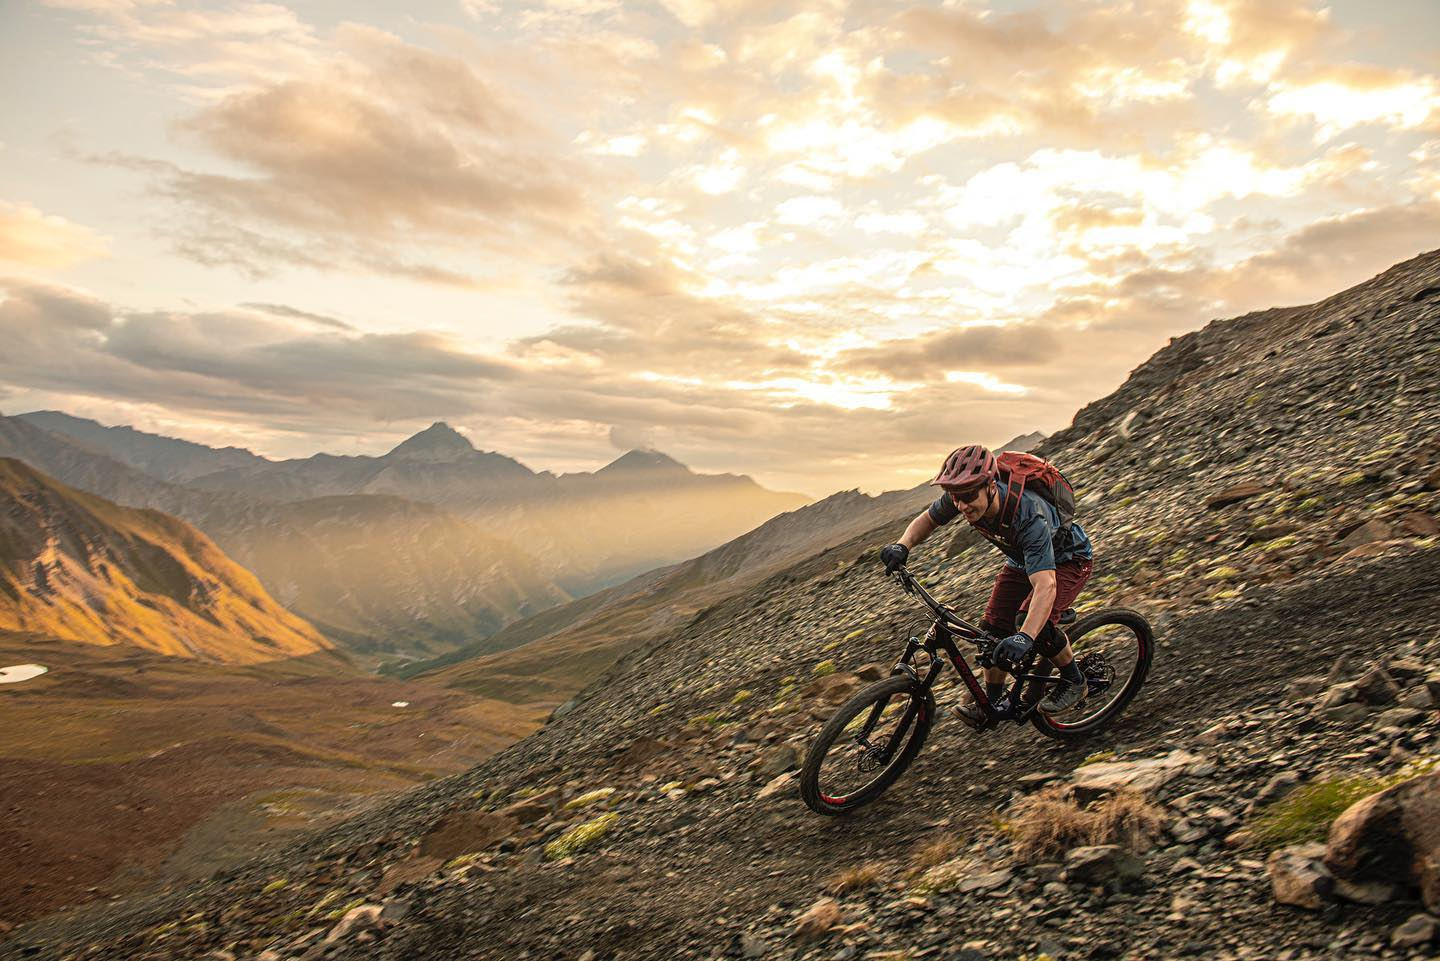 Finally there is an awesome weekend ahead of us! 🤩️ . . . If you want to experience high alpine technical trails like this, get in touch with @ridelaval_trailschool 🏼 . . . : @egelmairphotography